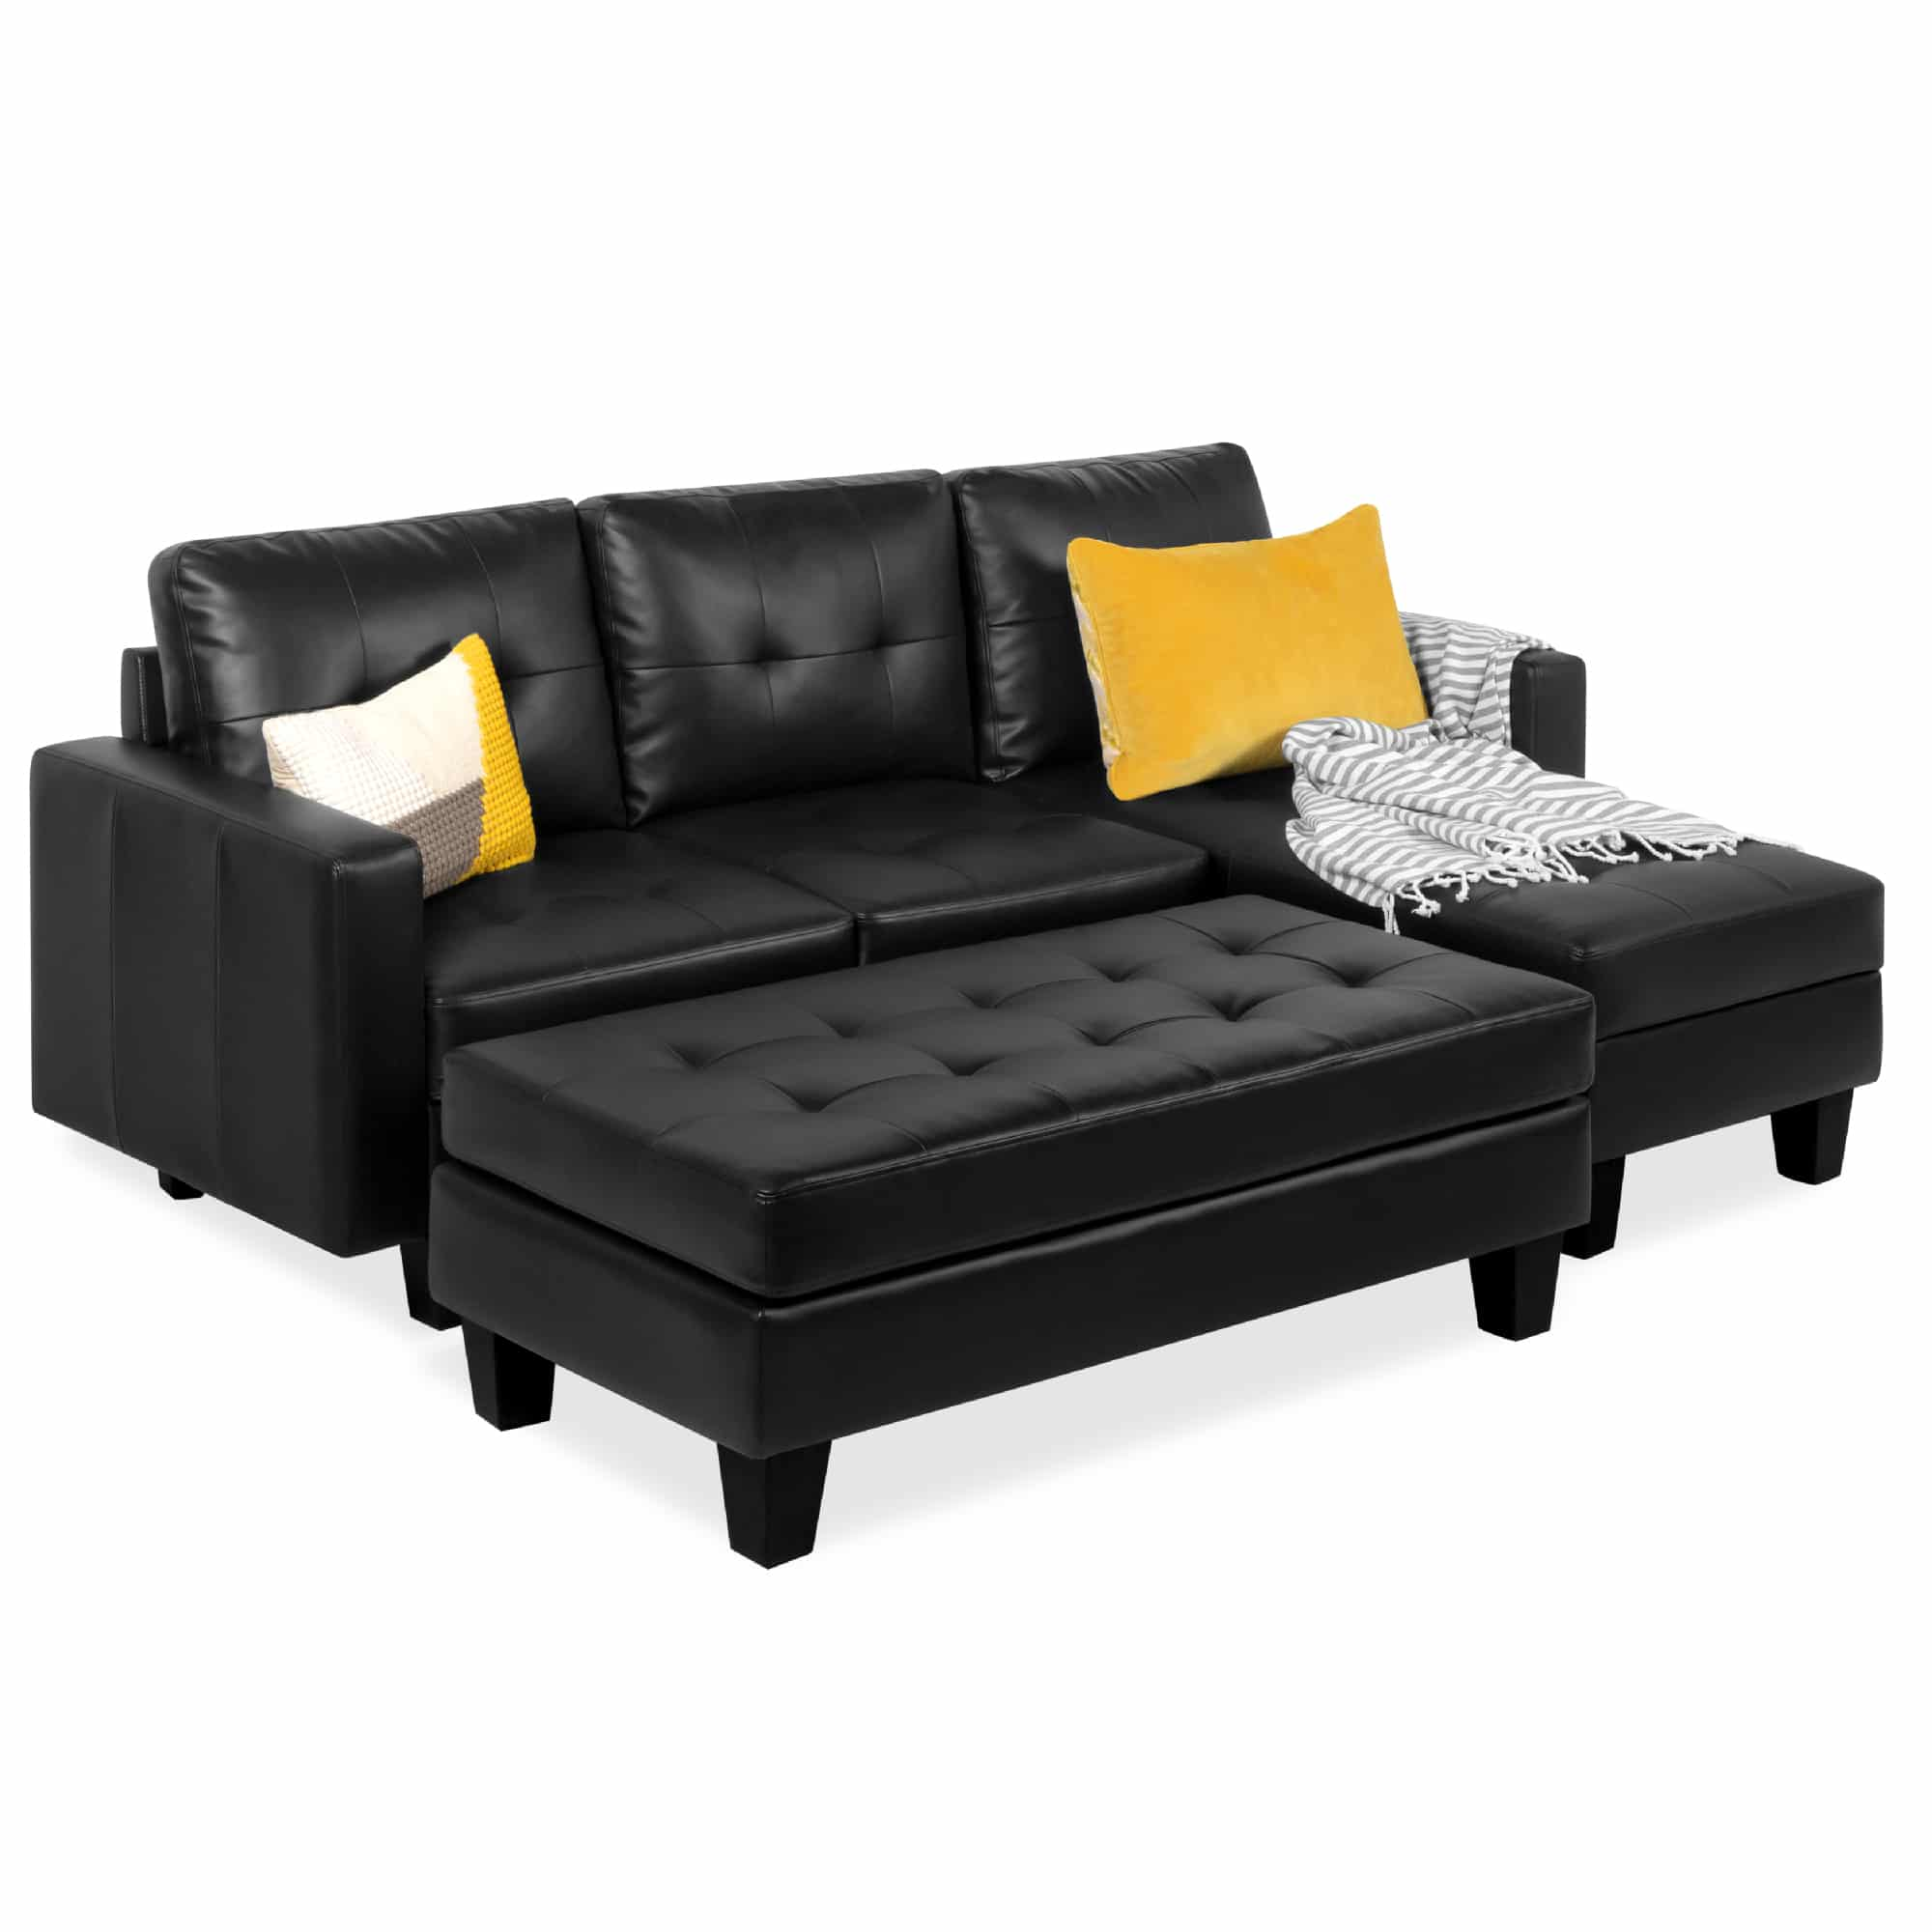 Best Choice Products Tufted Faux Leather 3-Seat L-Shape Sectional Sofa